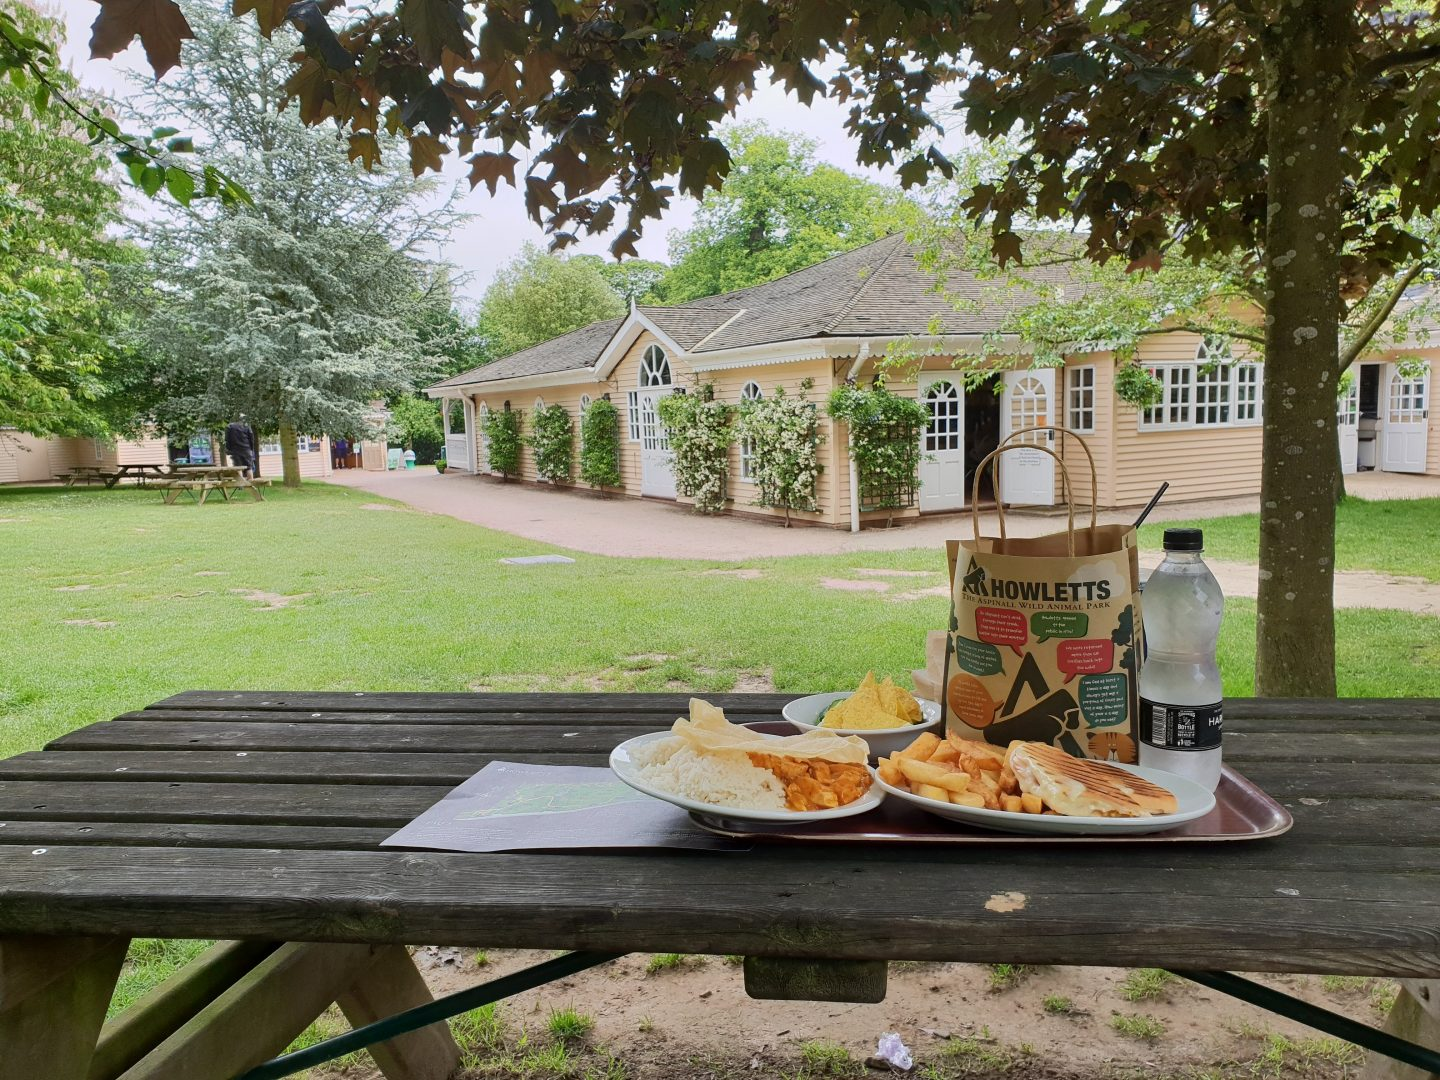 The Pavilion Restaurant at Howletts Wild Animal Park near Canterbury, Kent